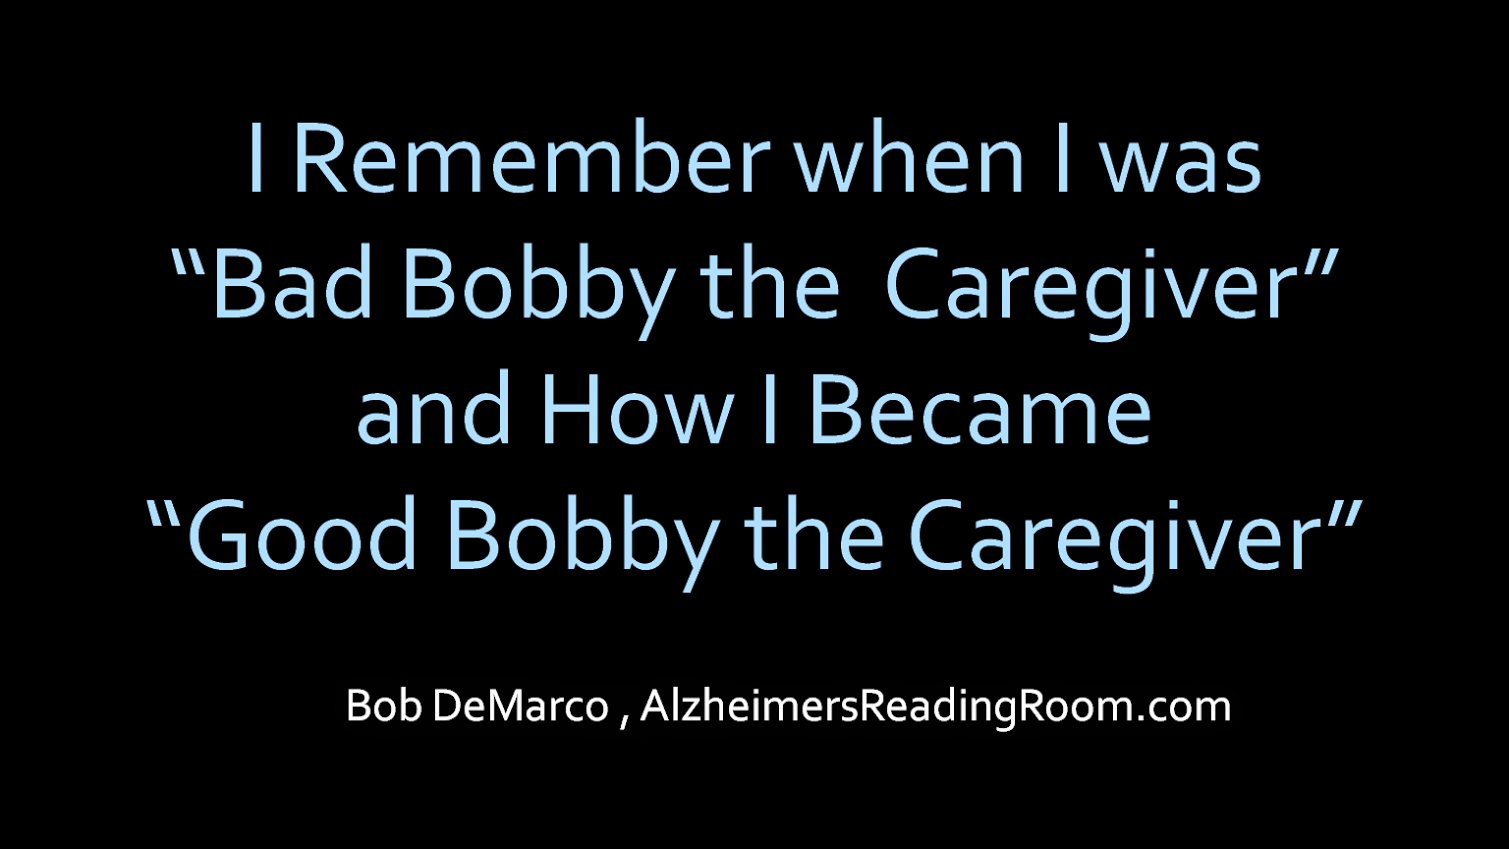 Good Bobby the Caregiver Quote